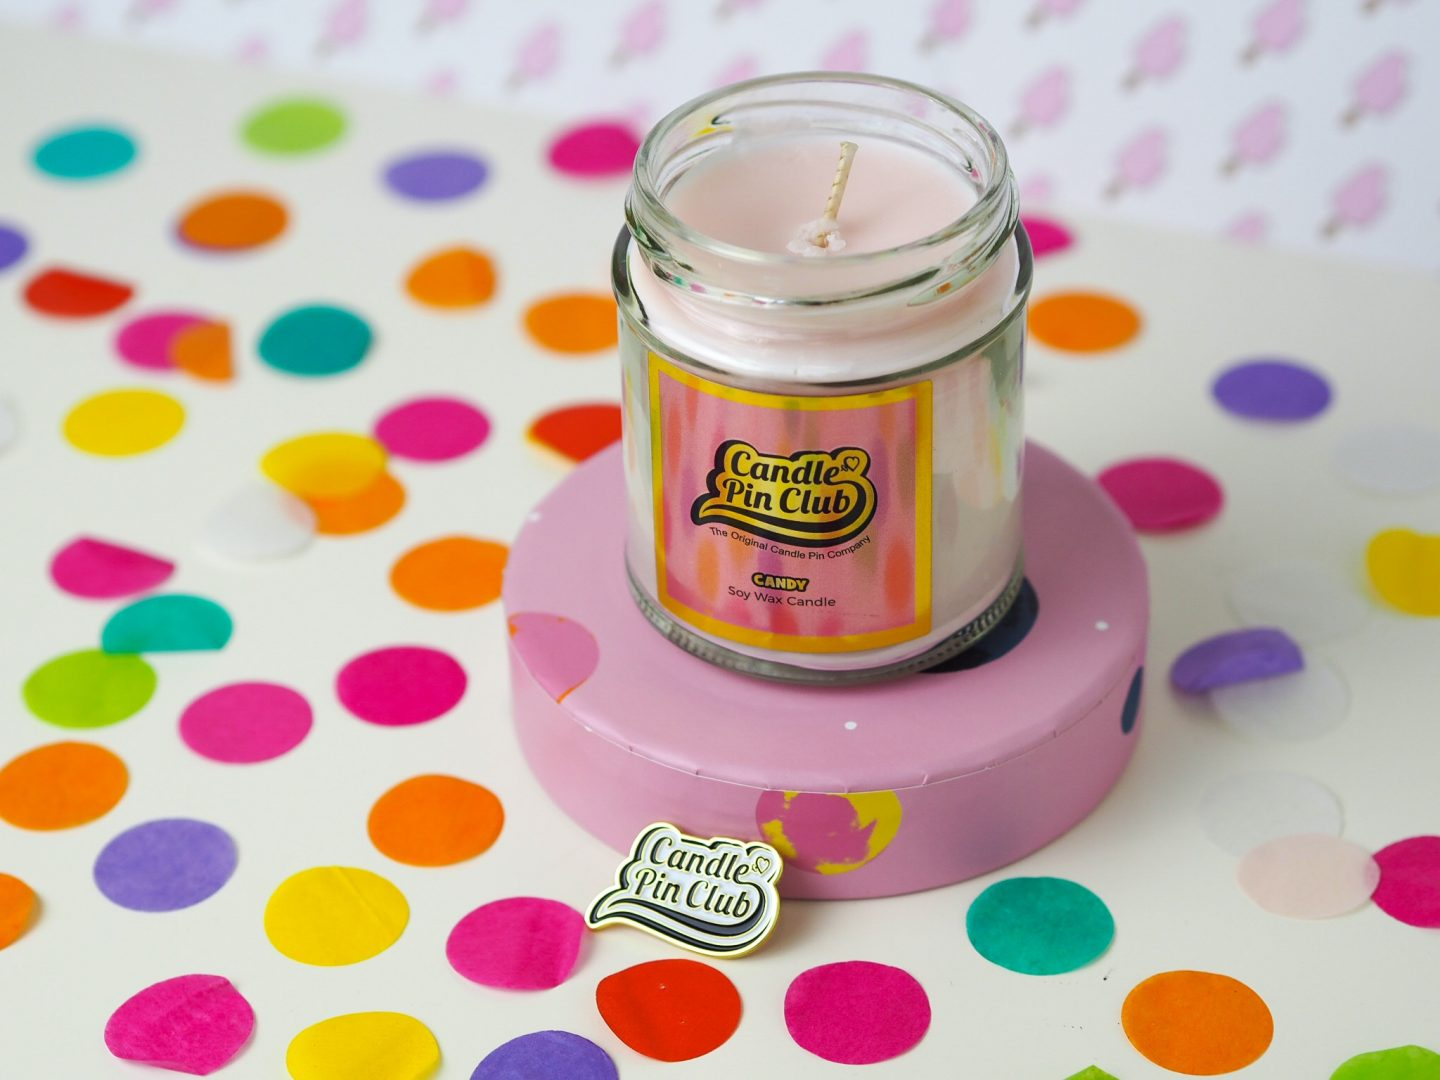 candle pin club candy candle not burning